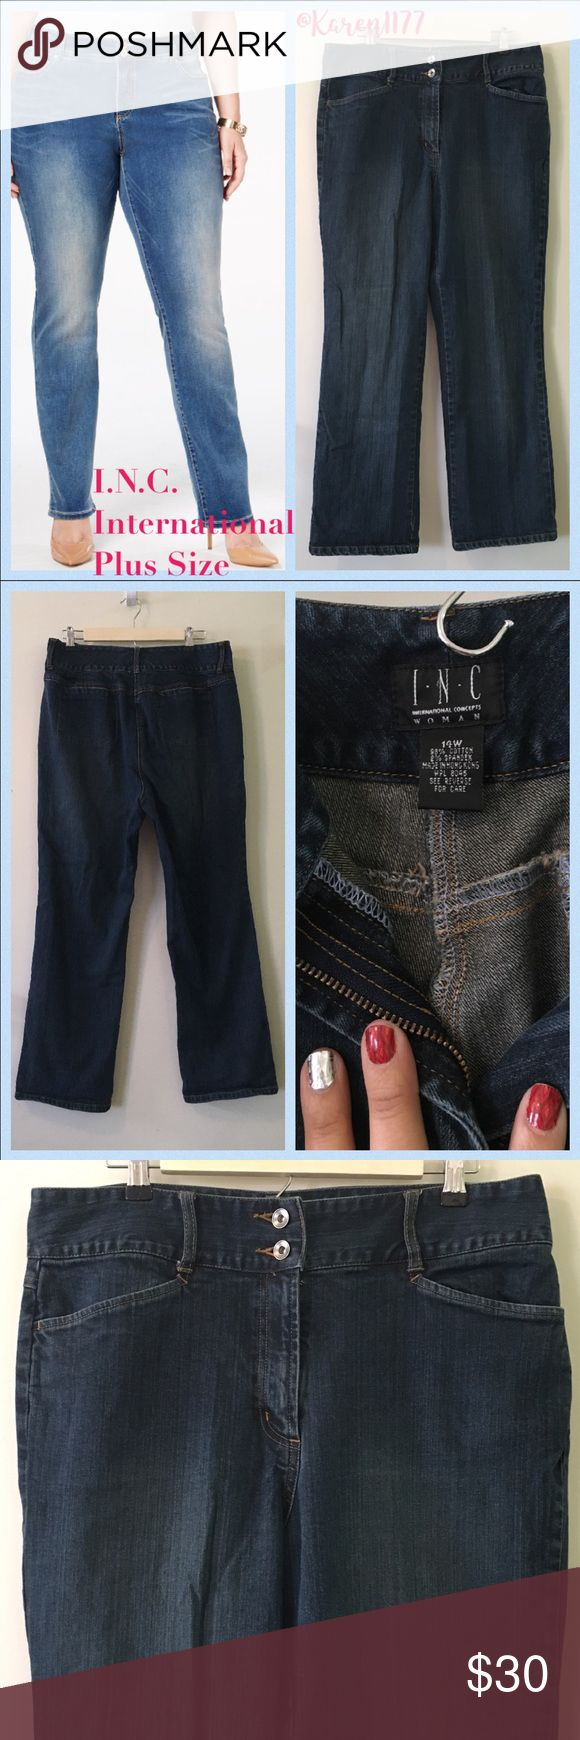 Listing✨INC Woman's Jeans✨ Preloved(used) INC Jeans. ✨A Must Have, Basic weekend, Work, boots or Pumps. ✨Best Deals when you Bundle!!✨Thanks! INC International Concepts Jeans Straight Leg